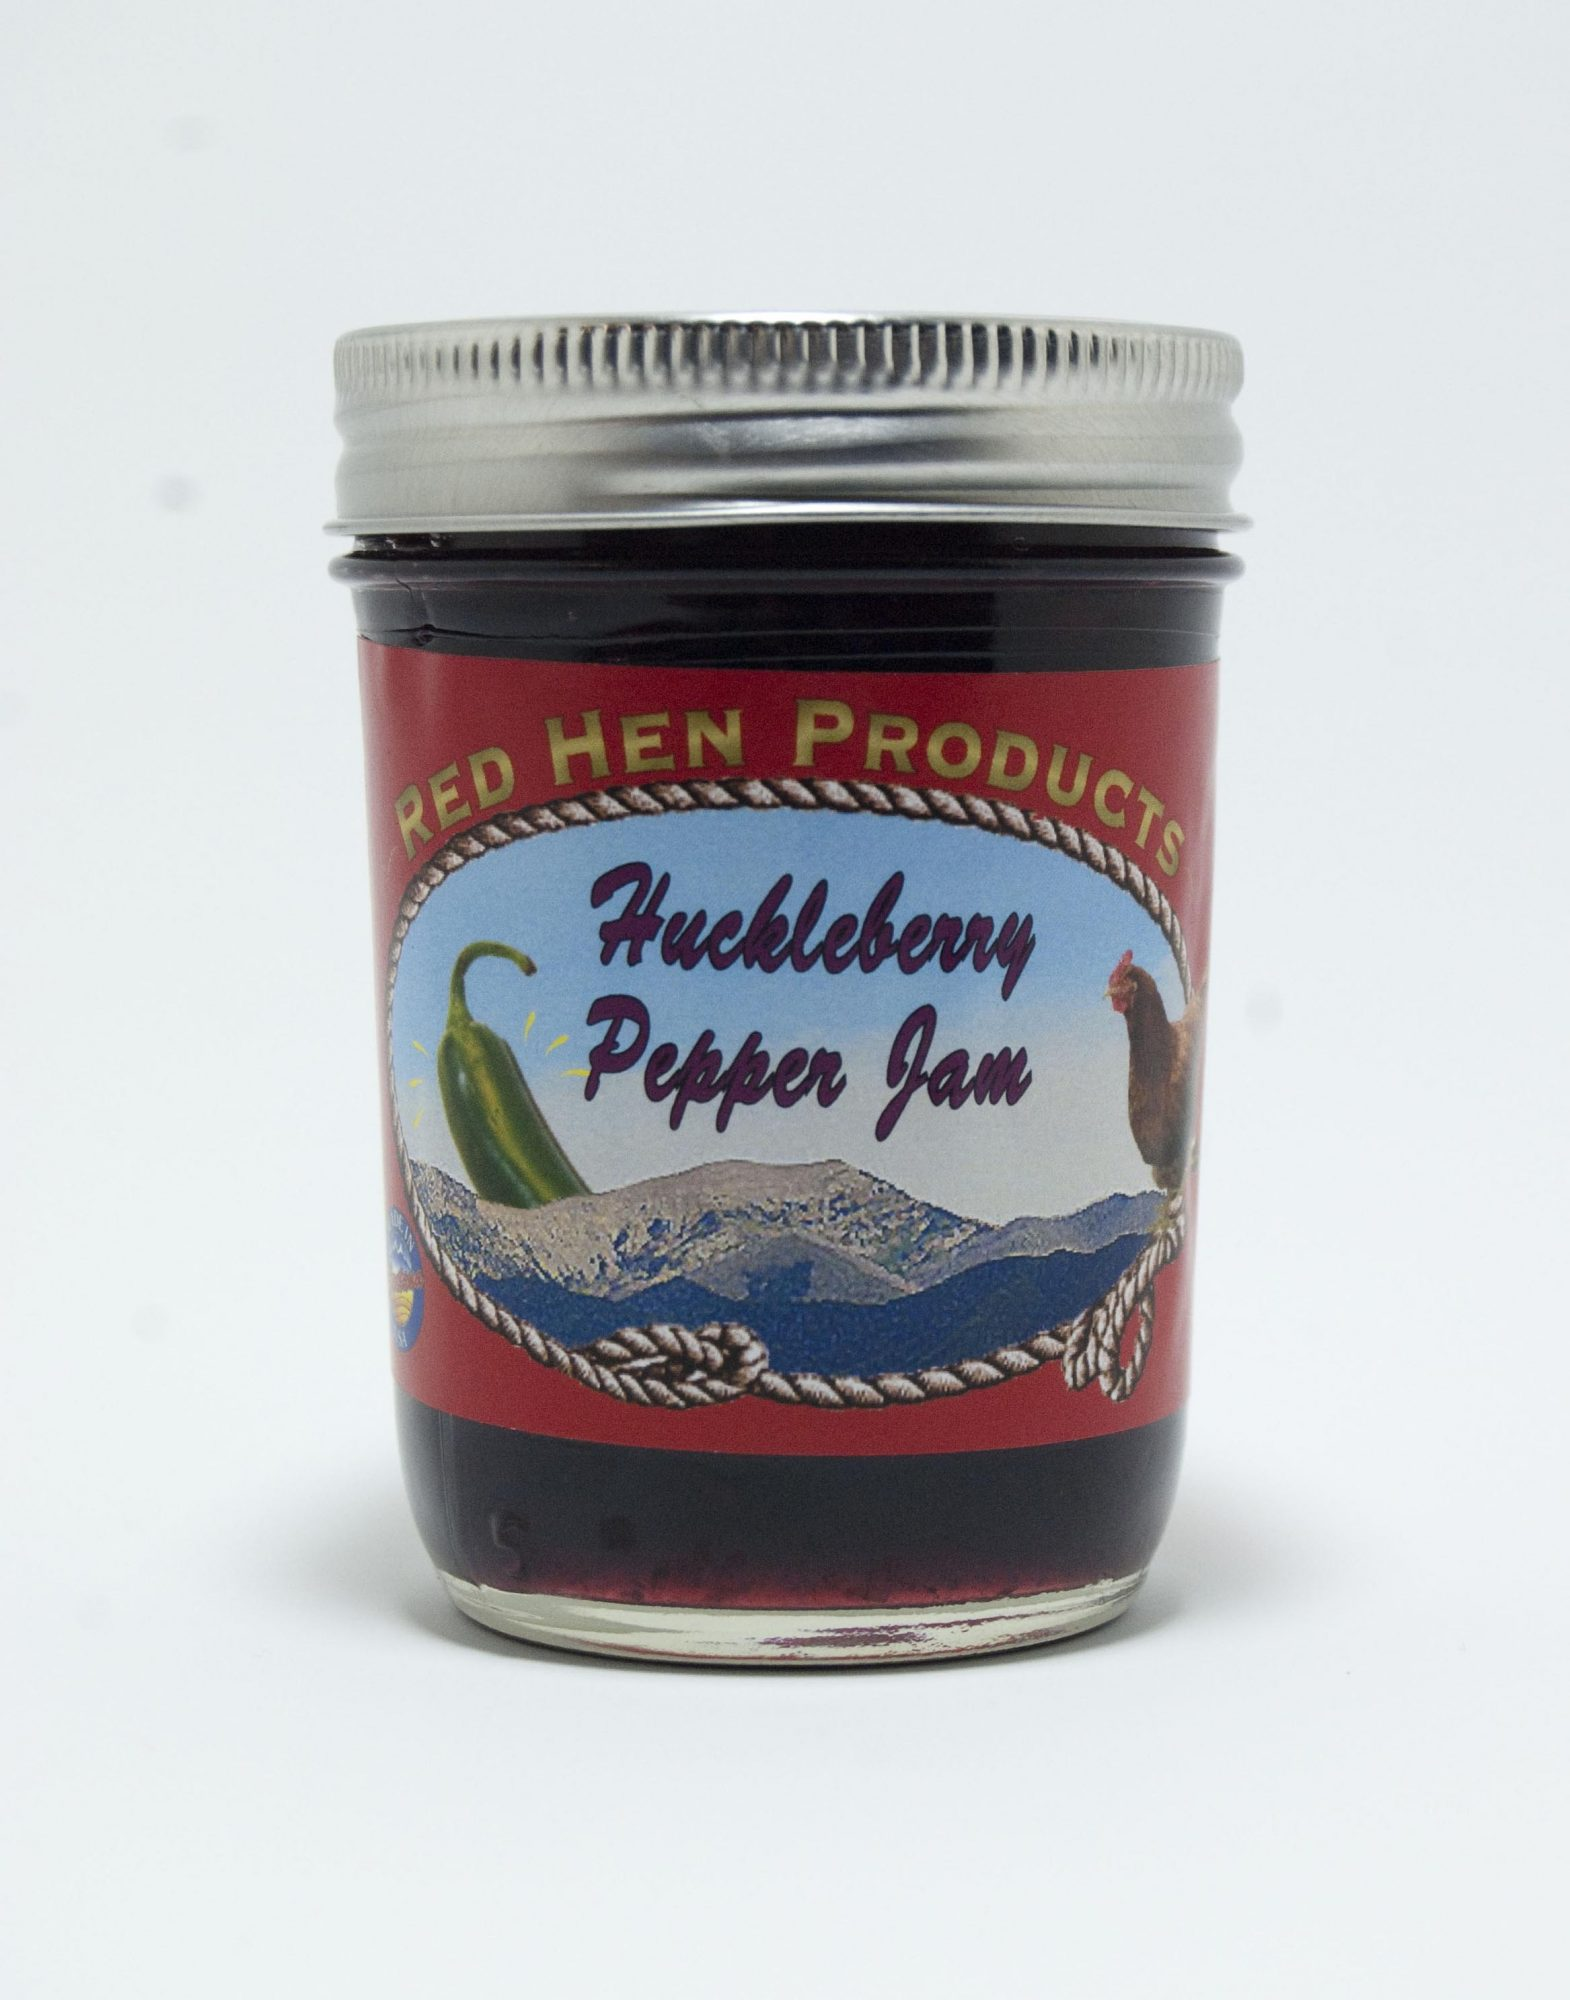 Huckleberry Pepper Jam